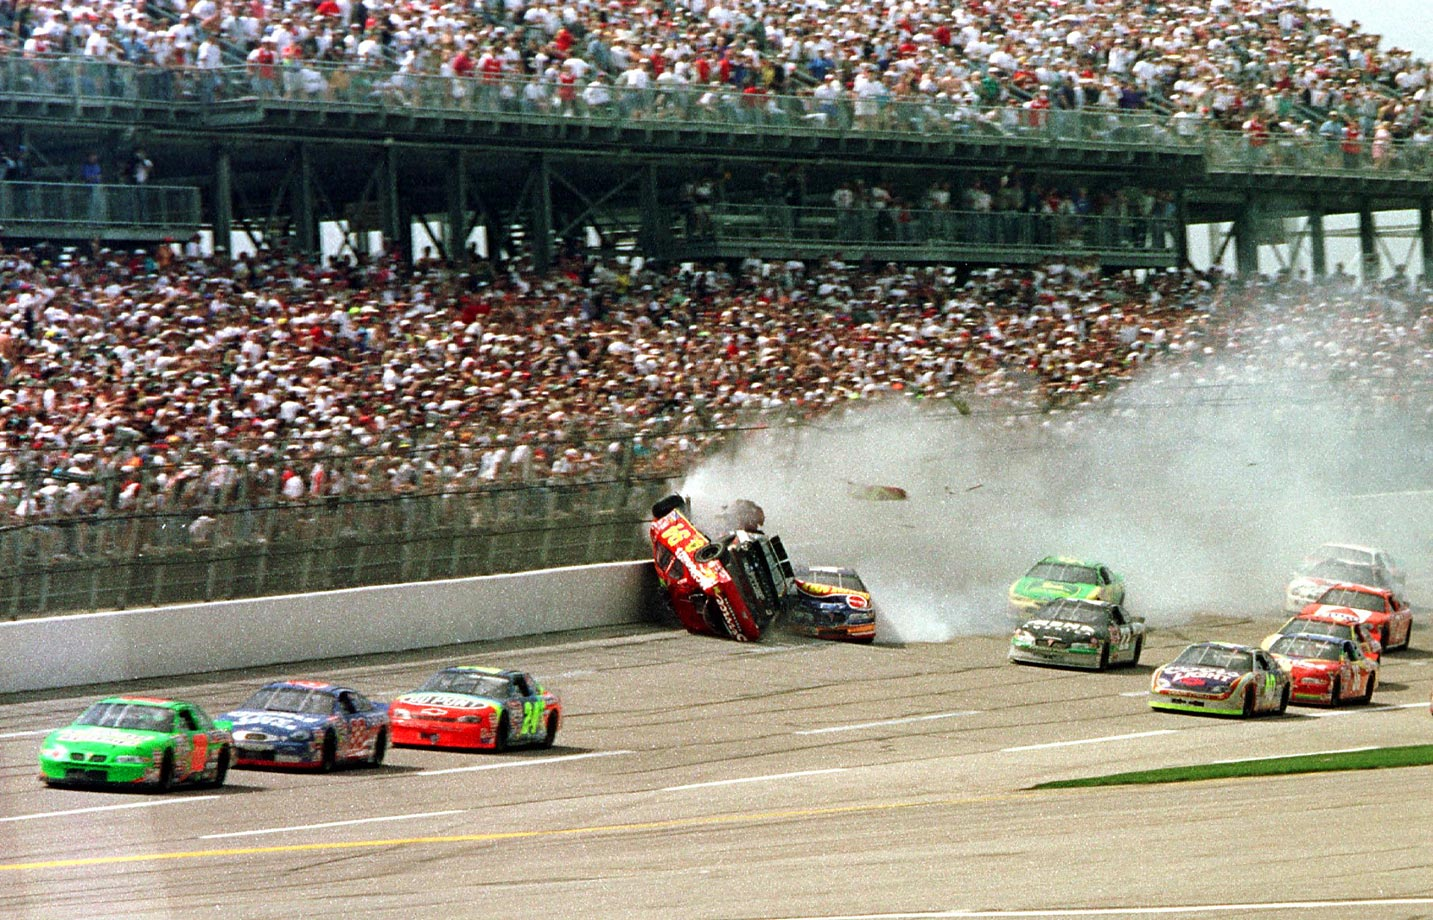 Ward Burton nudges Dale Earnhardt into Bill Elliot and then all hell breaks loose. What was an orderly race a few moments earlier is suddenly nothing more than a flock of wildly spinning cars in an impenetrable cloud of smoke. Amazingly, the only injury was Earnhardt's singed mustache.